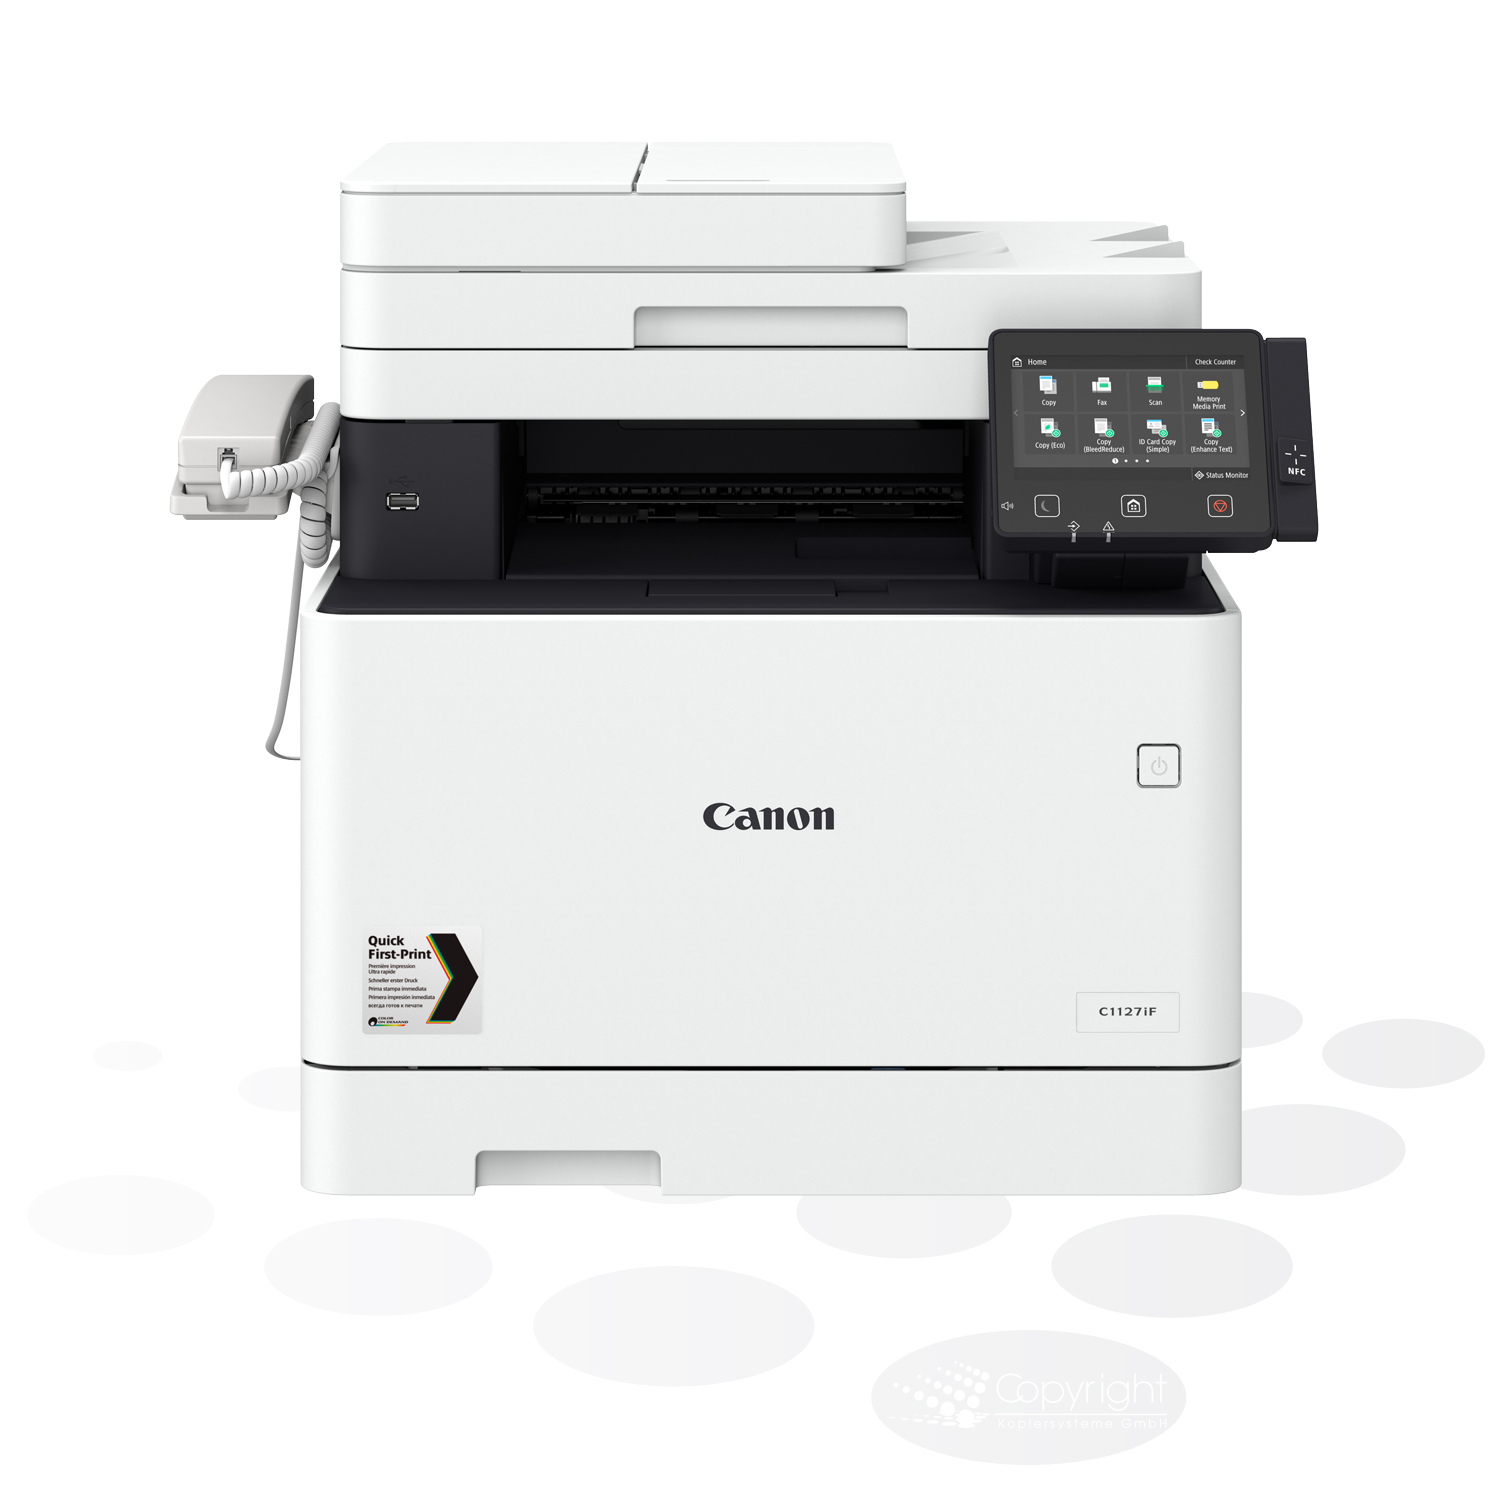 Canon i-SENSYS X C1127iF (inkl. Fax)